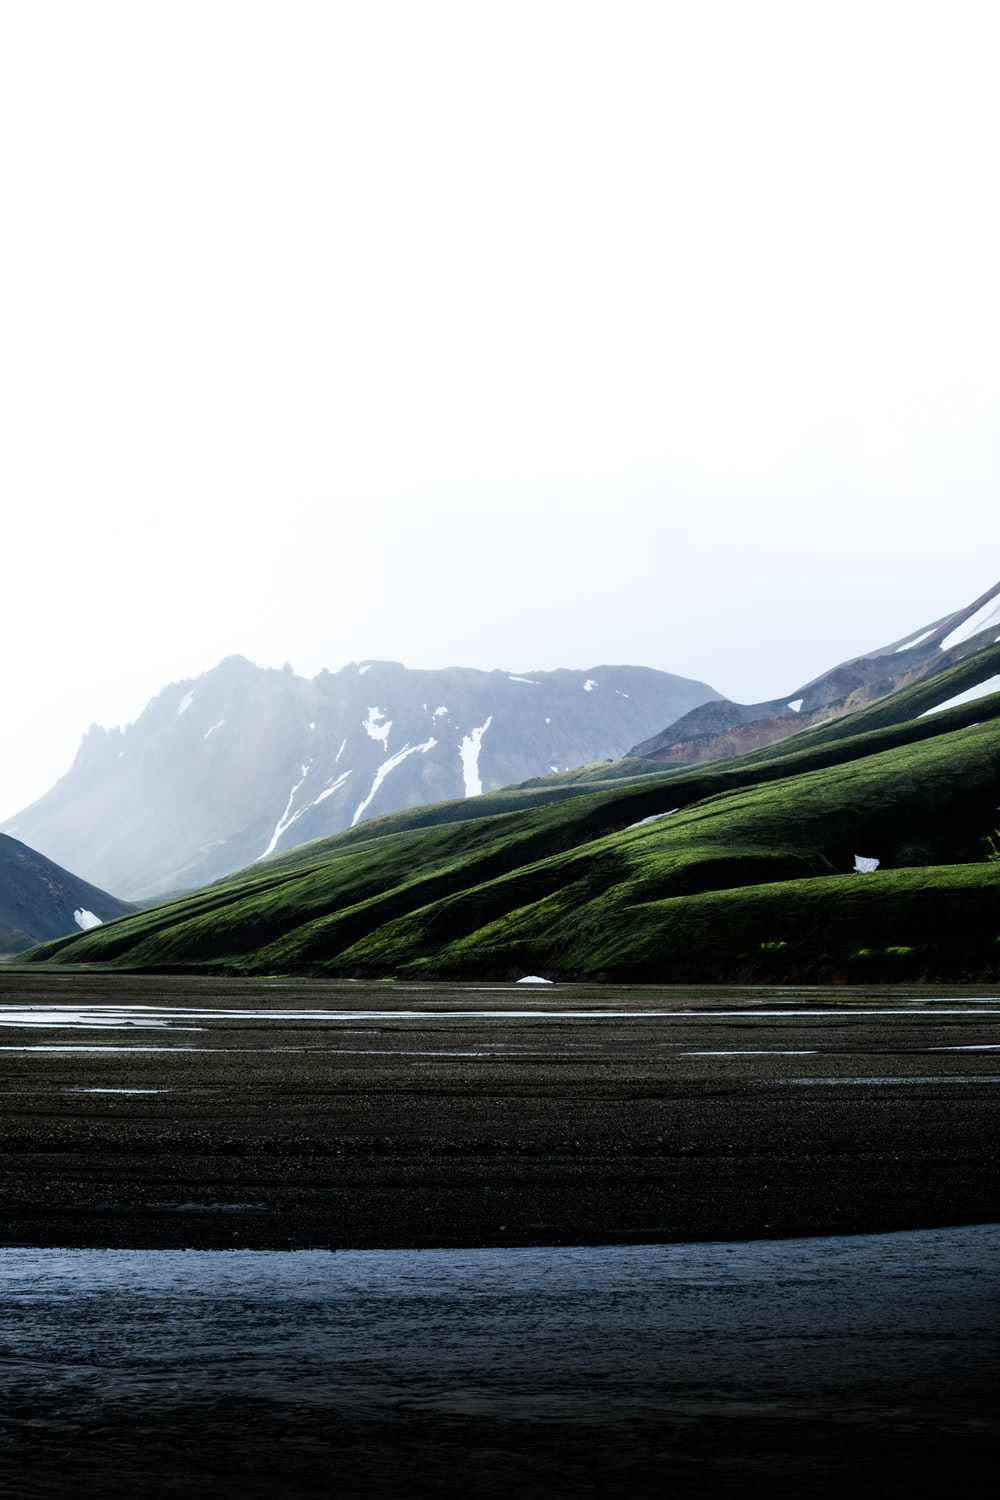 view photography of mountain and lake during daytime